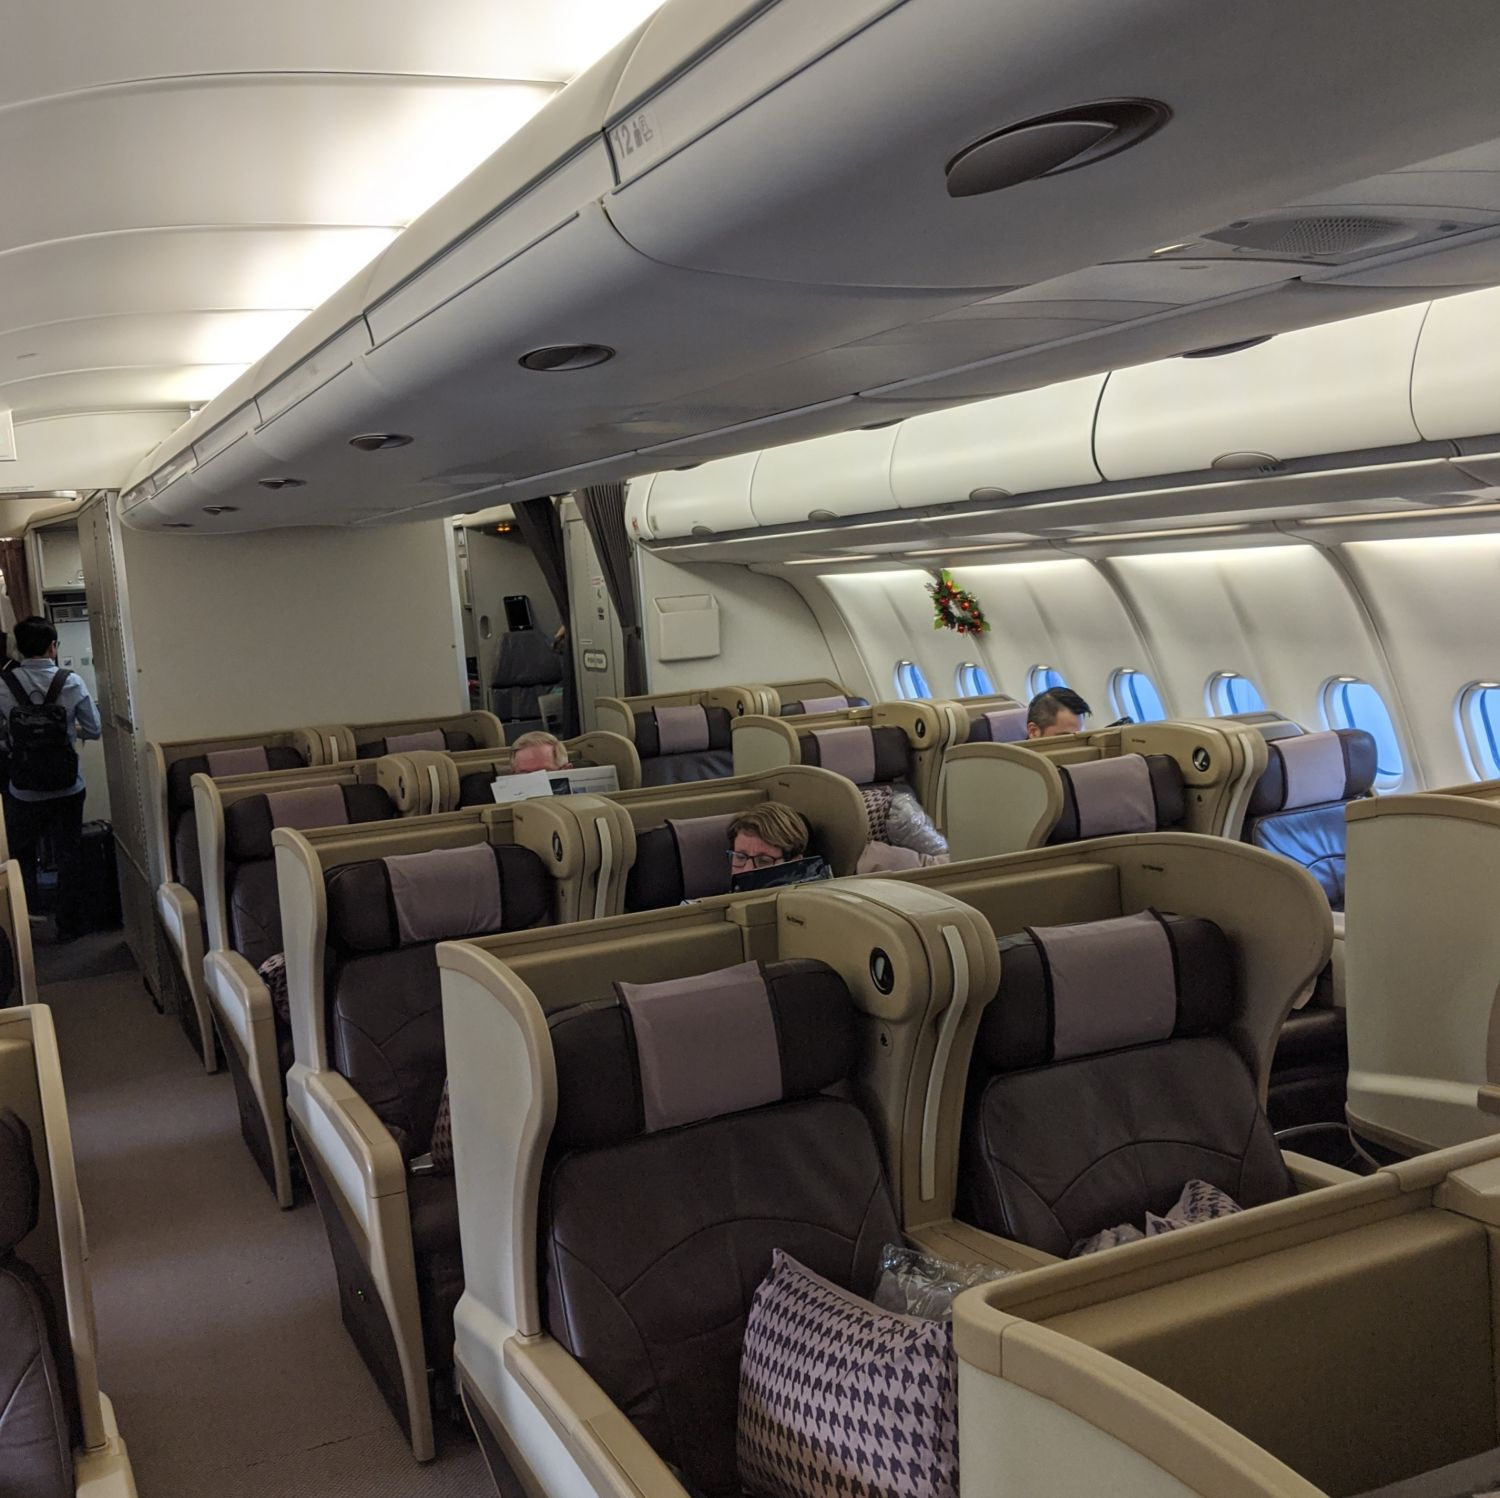 Regional Business Class on Singapore Airlines SQ998 Airbus A330-300 Business Class Cabin